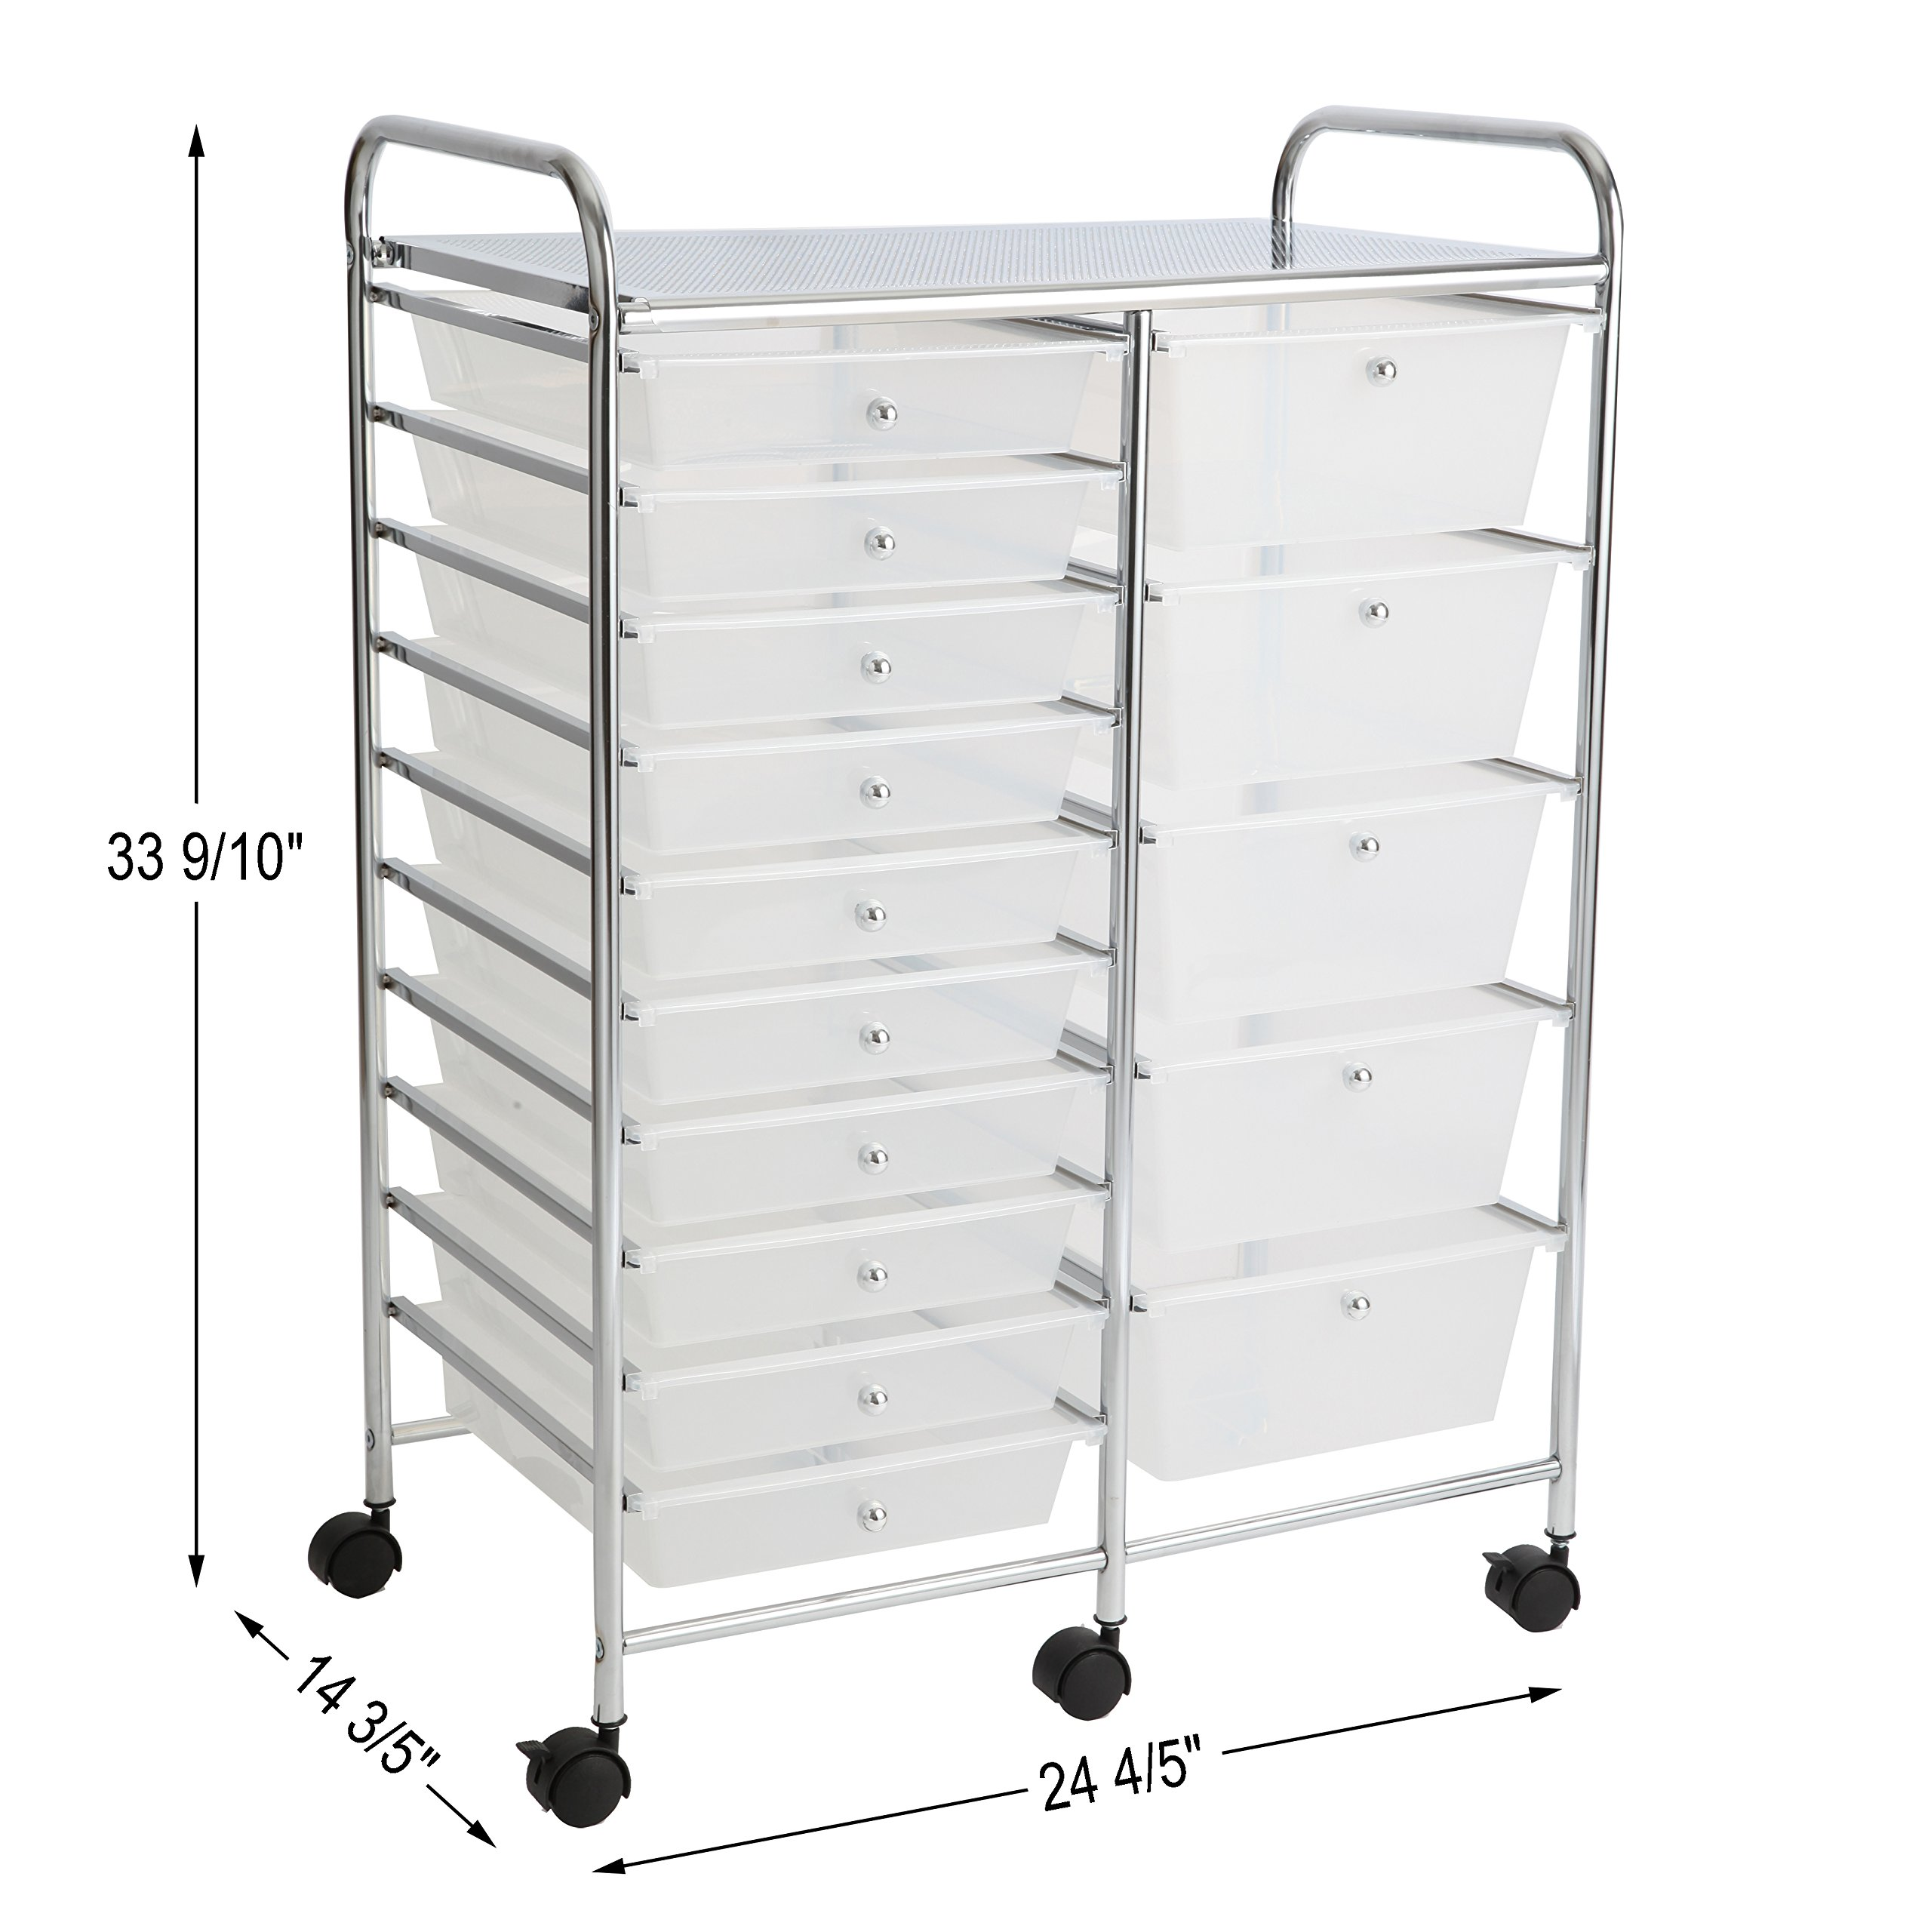 Finnhomy 15 Drawer Rolling Cart Organizer Storage Cart with Drawers Utility Cart for School Office Home Beauty Salon Storage Semi-Transparent White by Finnhomy (Image #3)